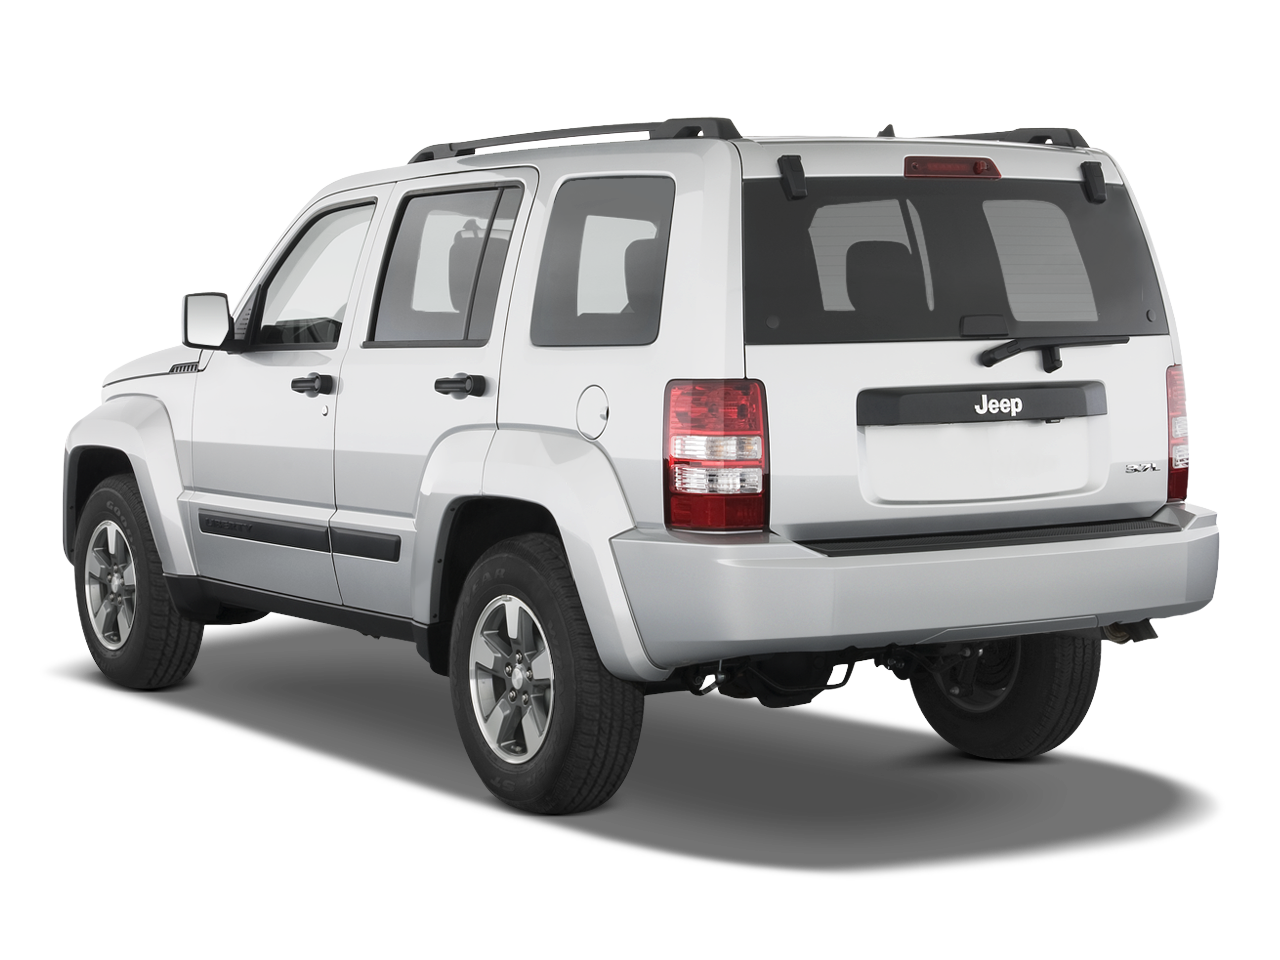 Chrysler CEO: Jeep Liberty, Dodge Nitro Replacements In the Works